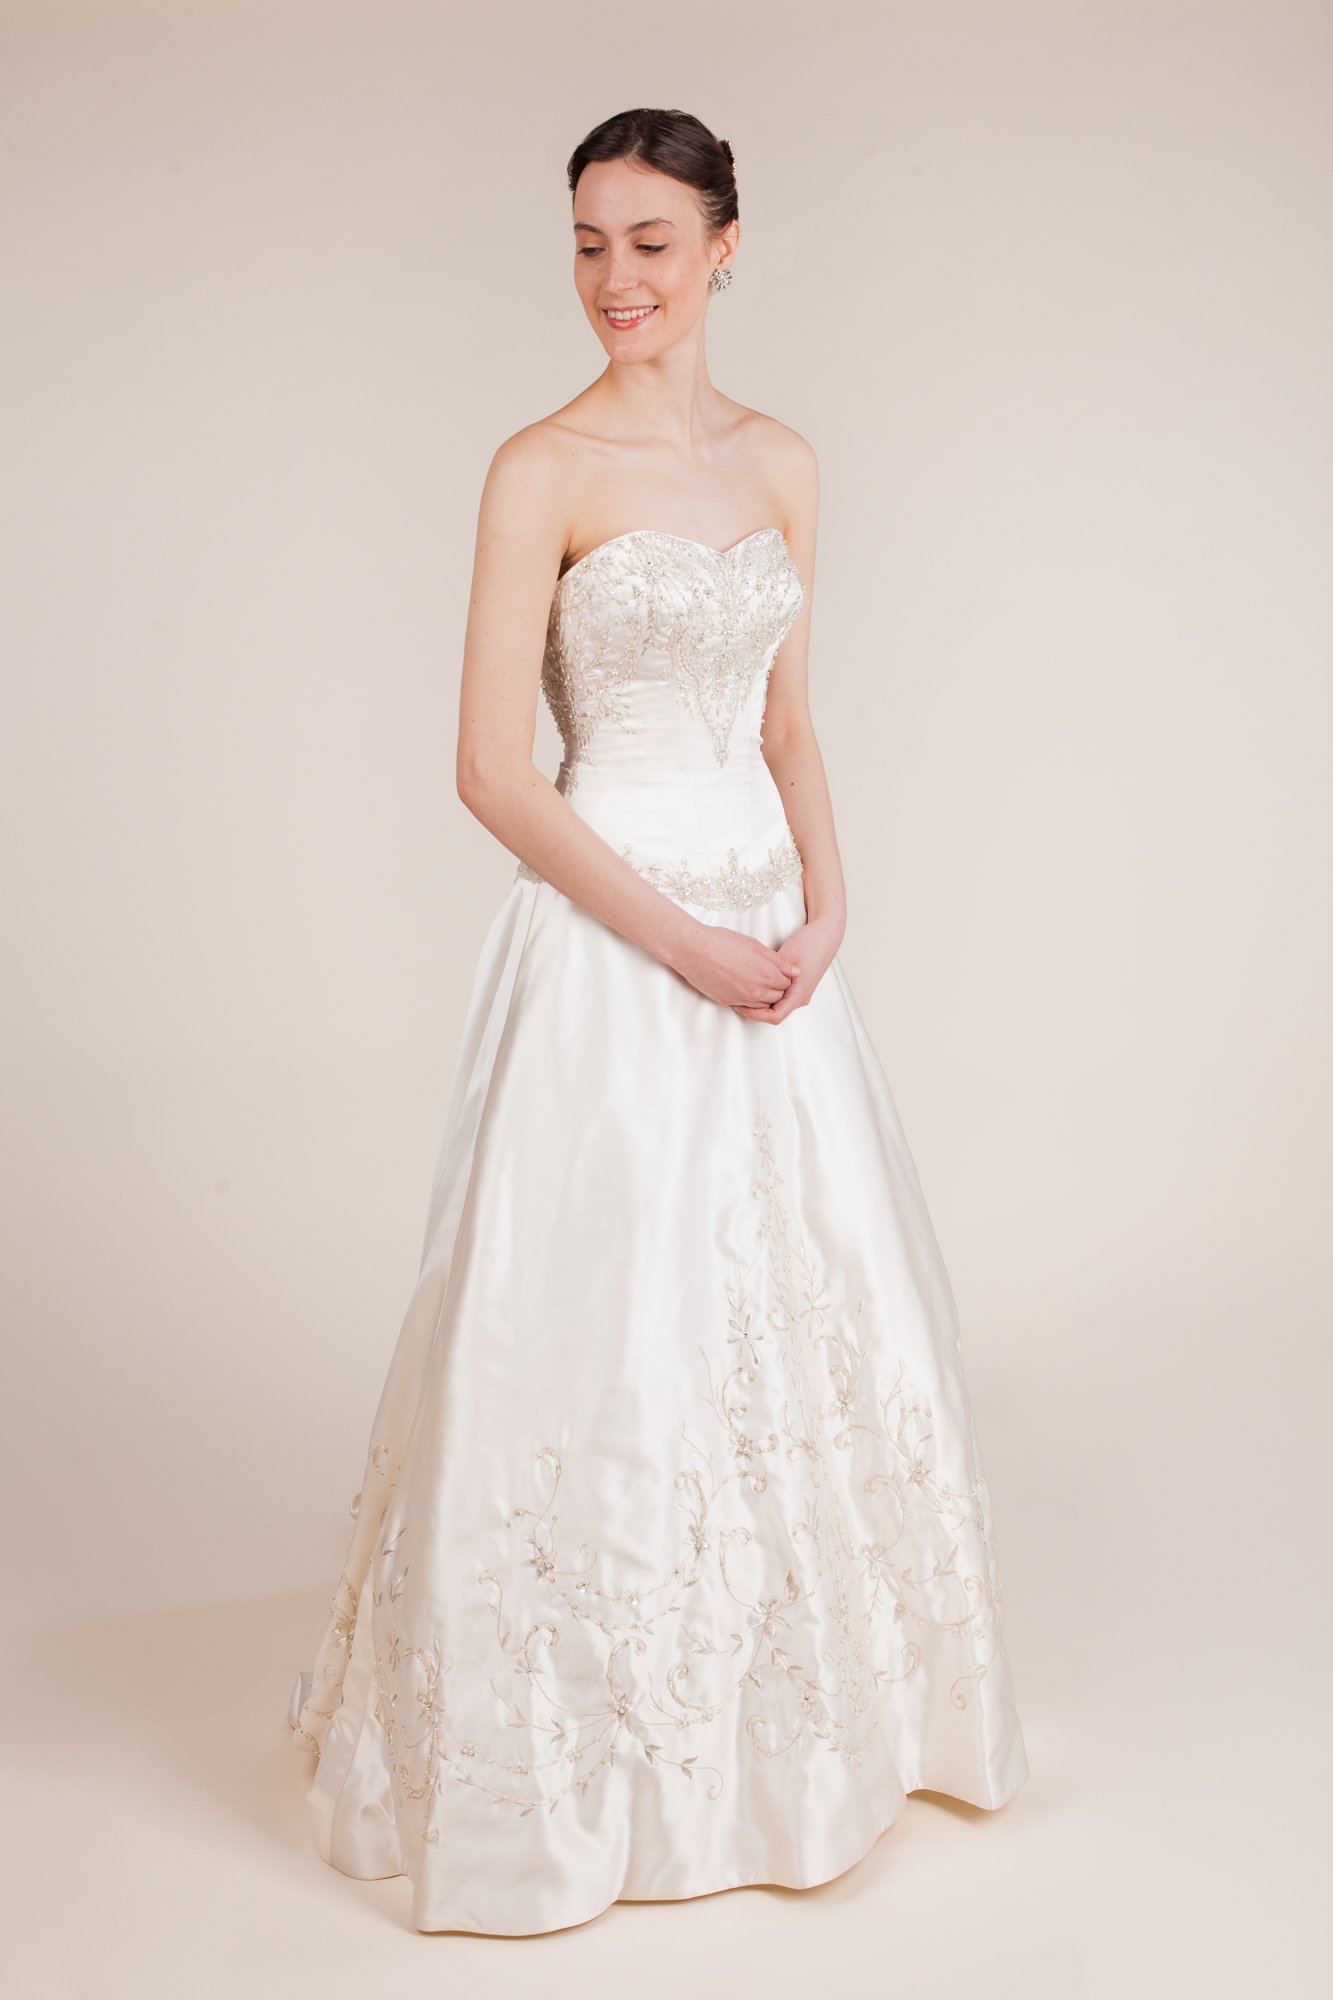 Allure bridals size  - $600 - (50% OFF)